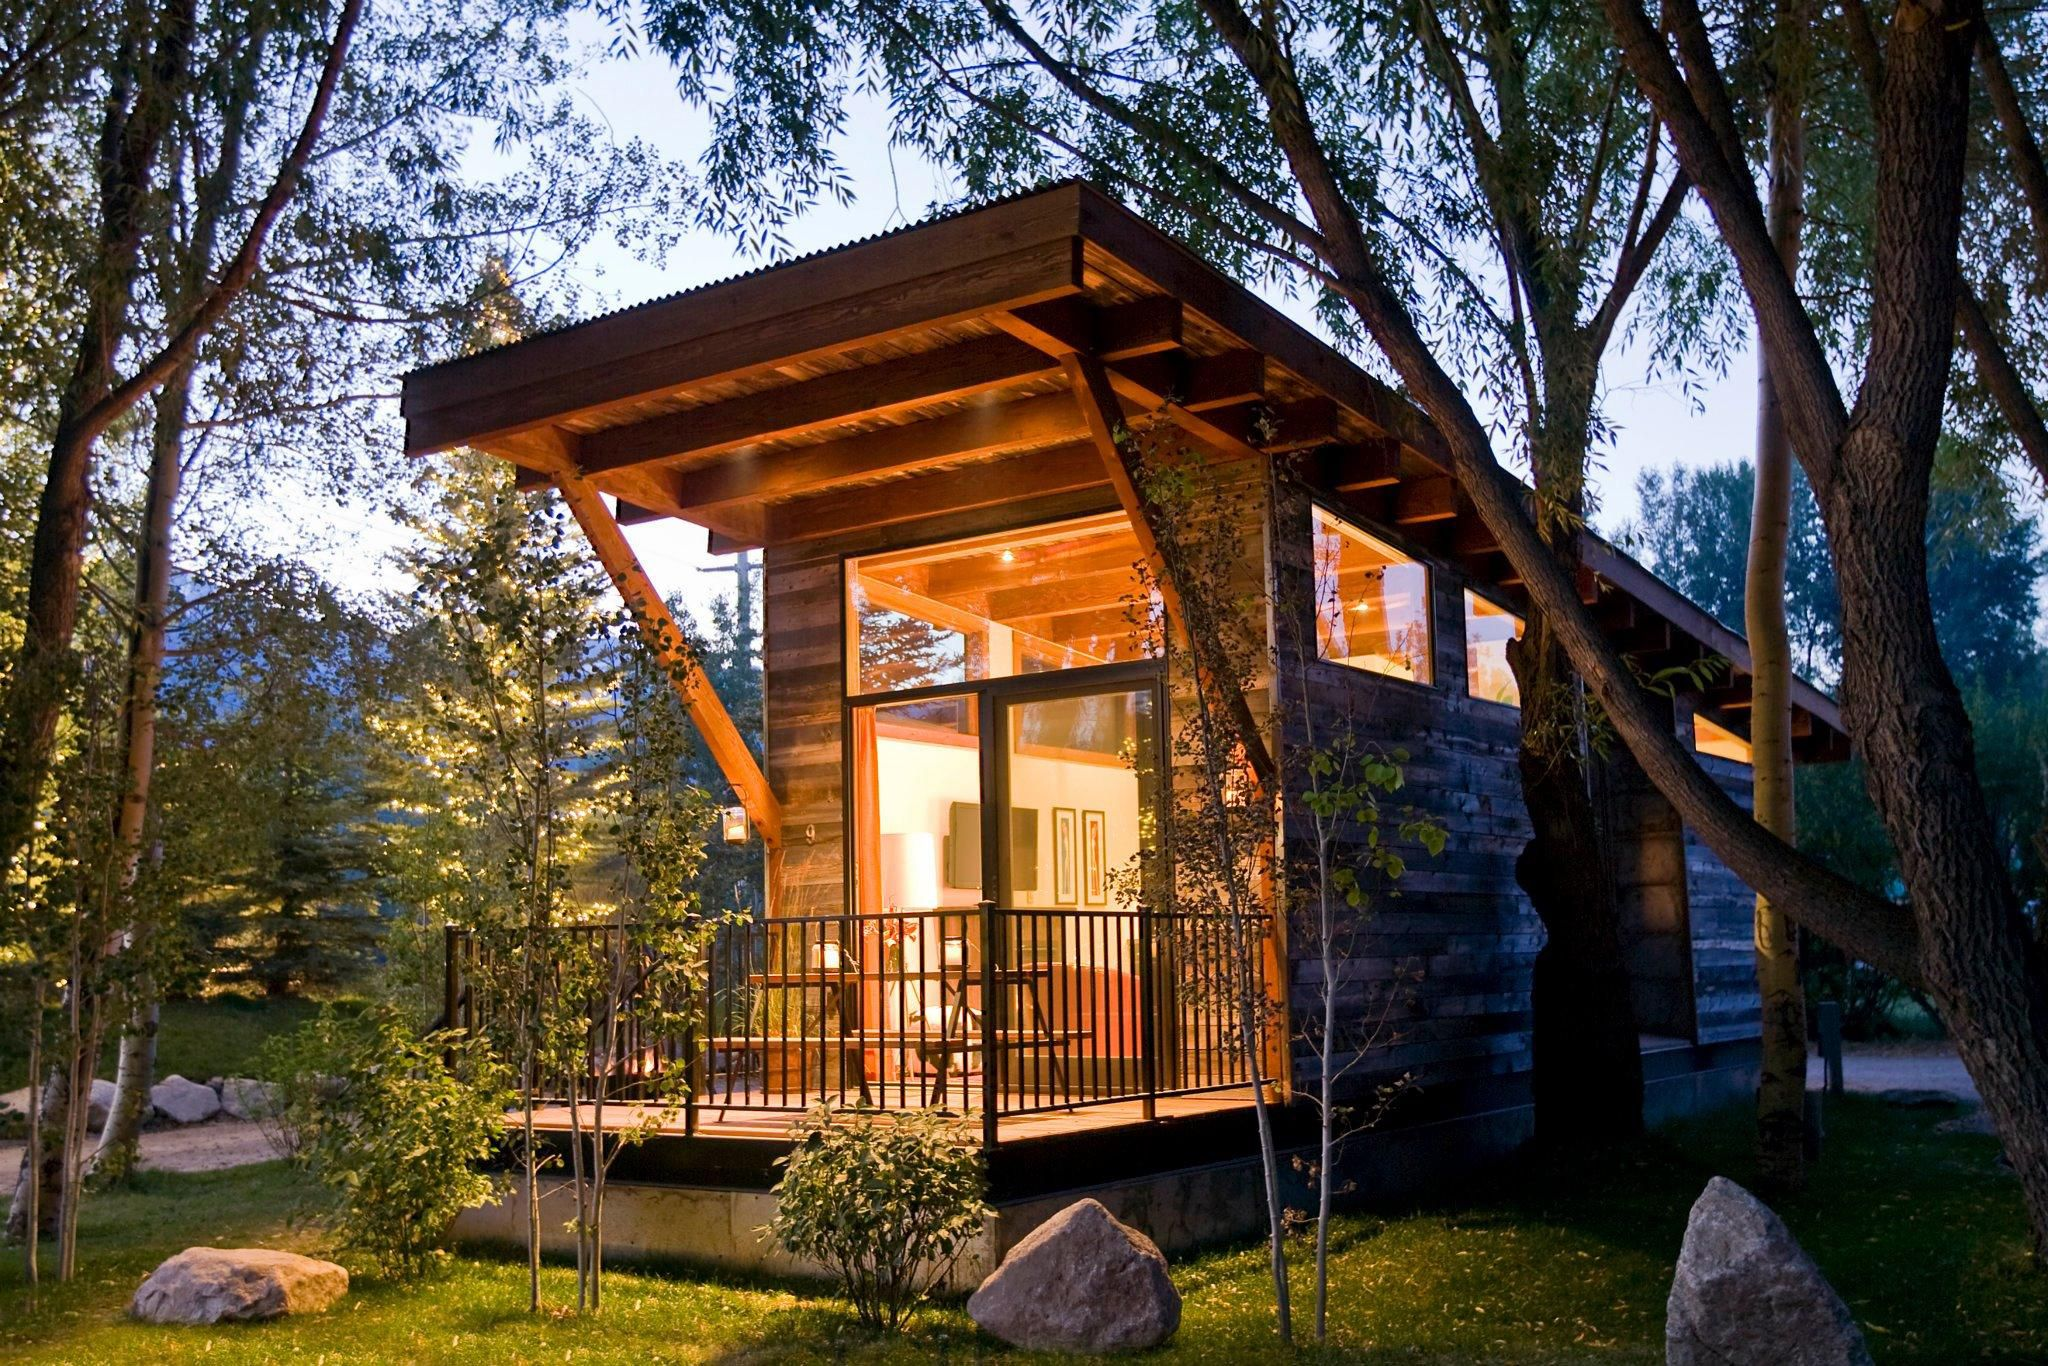 18 Small Cabins You Can Diy Or Buy For 300 And Up How To Build Tin Cabin